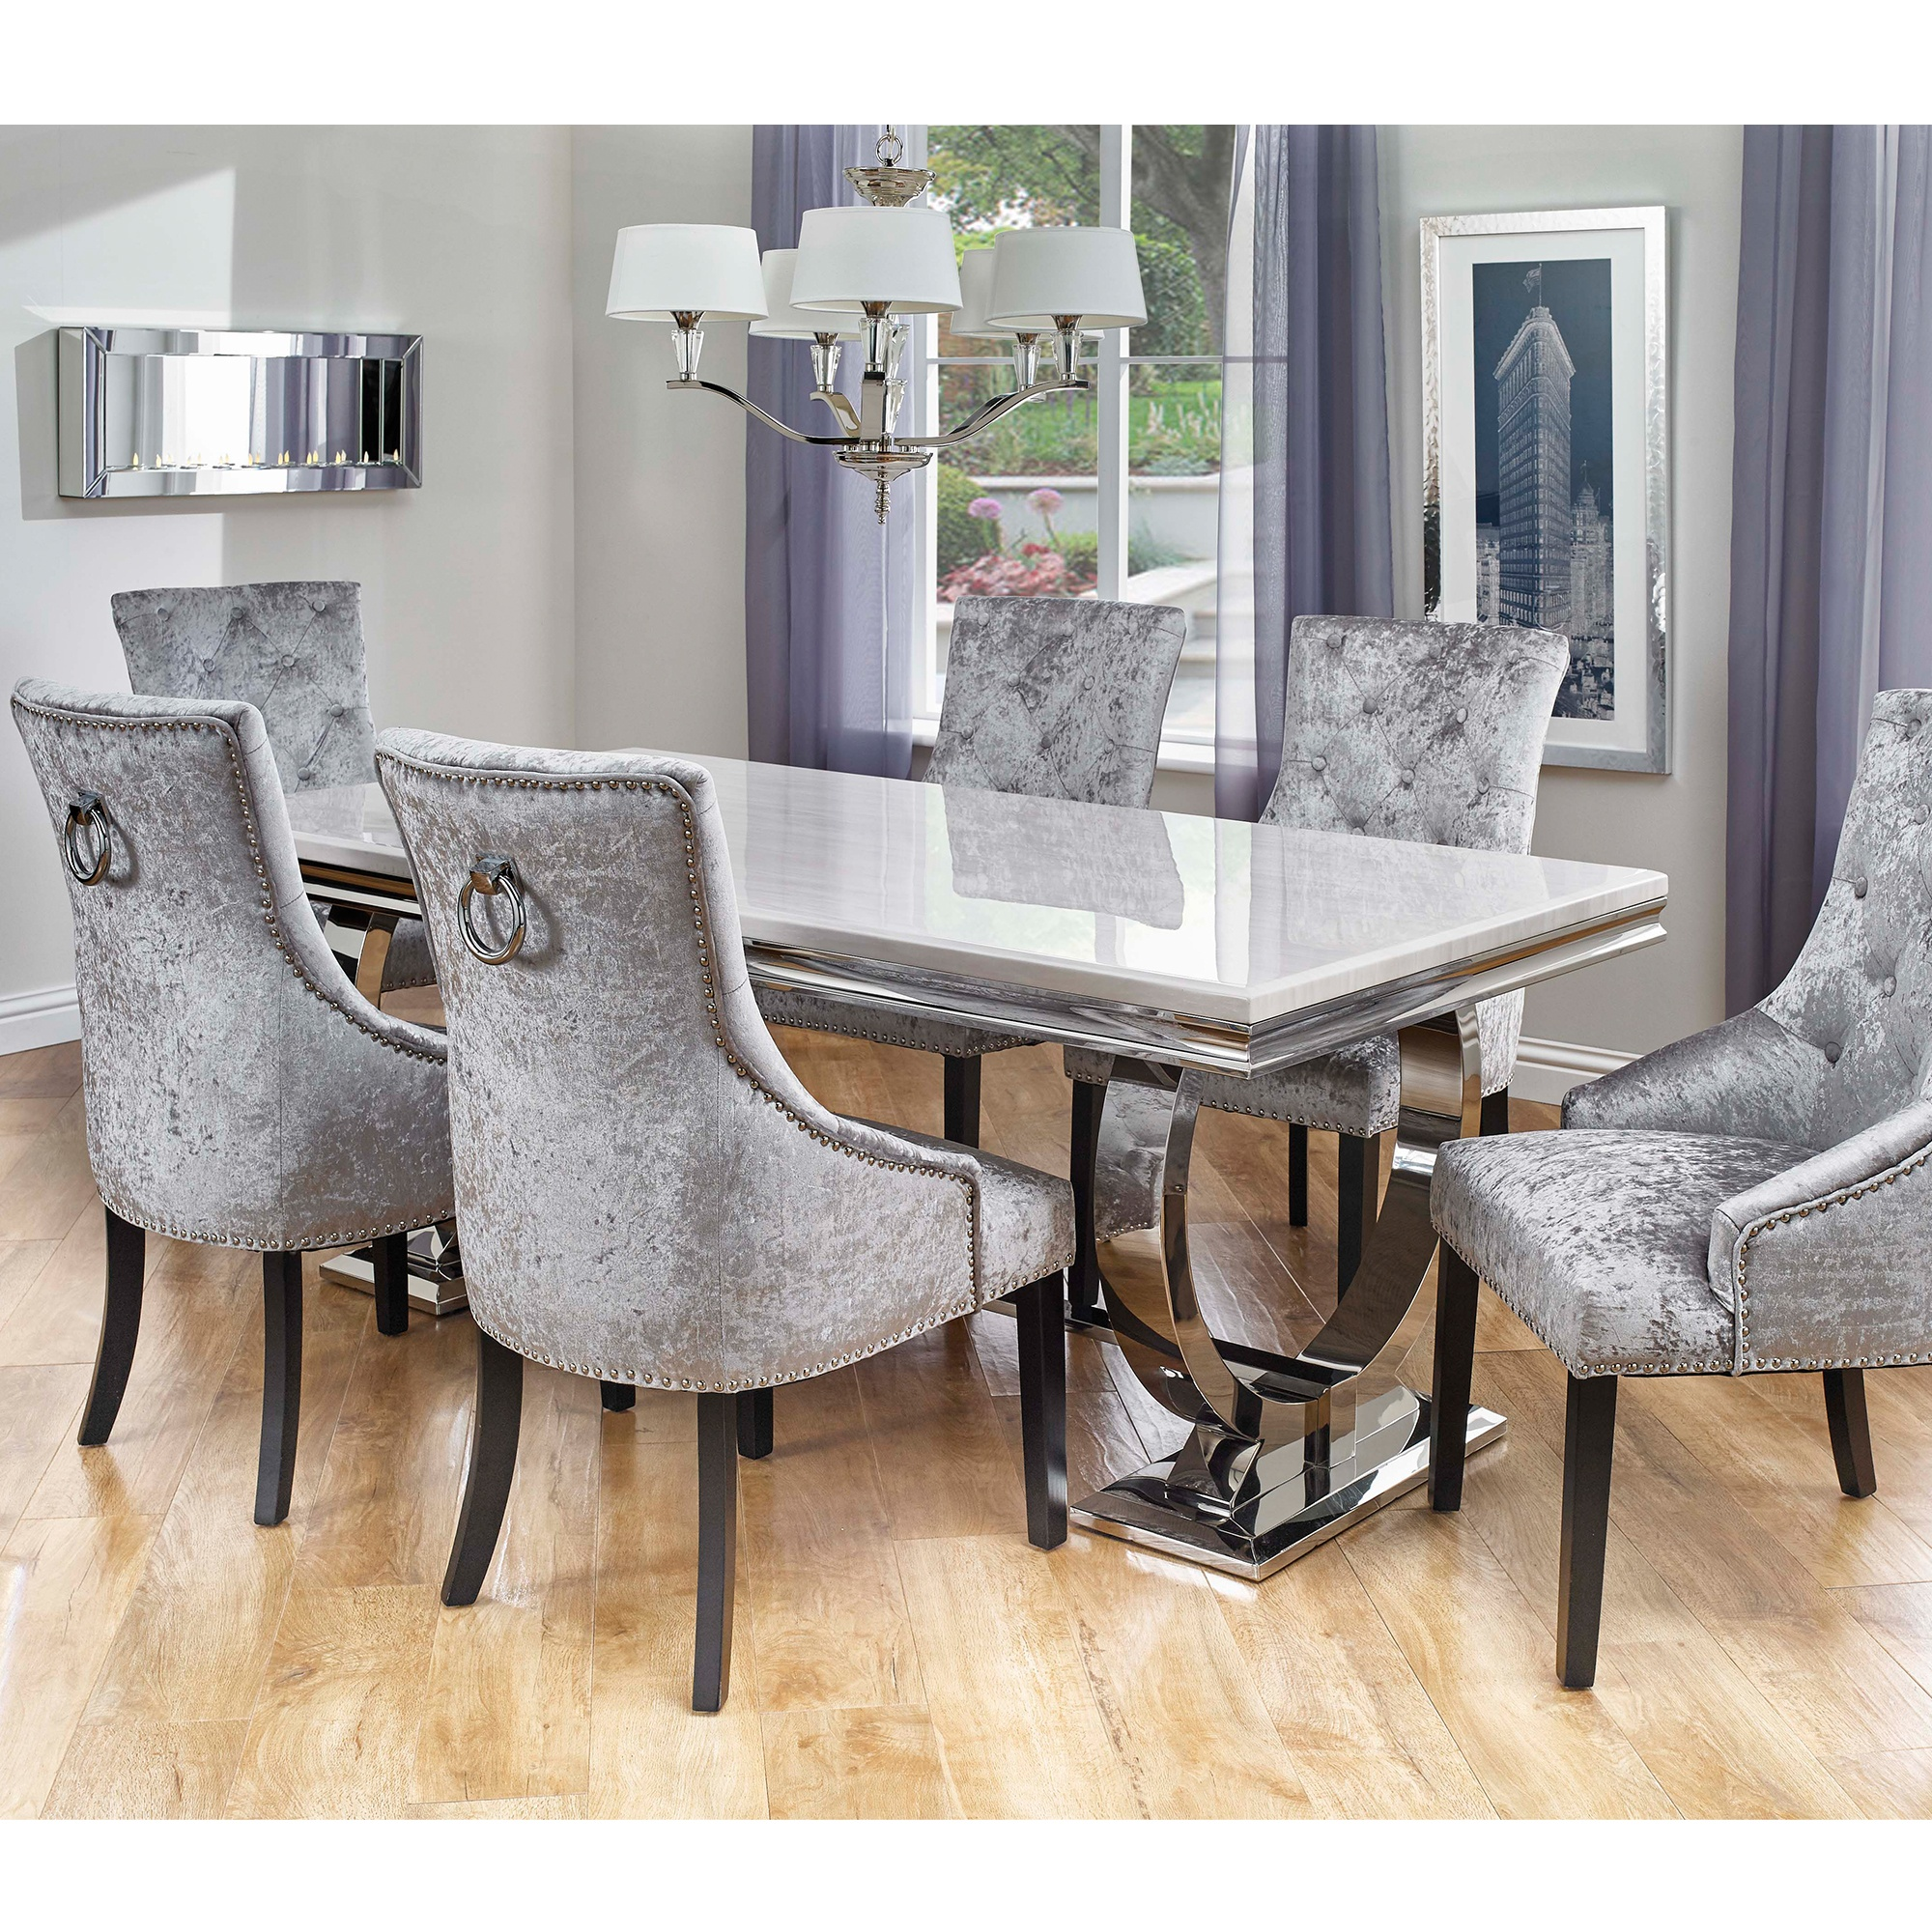 Dining Chair Sets Of 6: Cookes Collection Valentina Dining Table And 6 Chairs